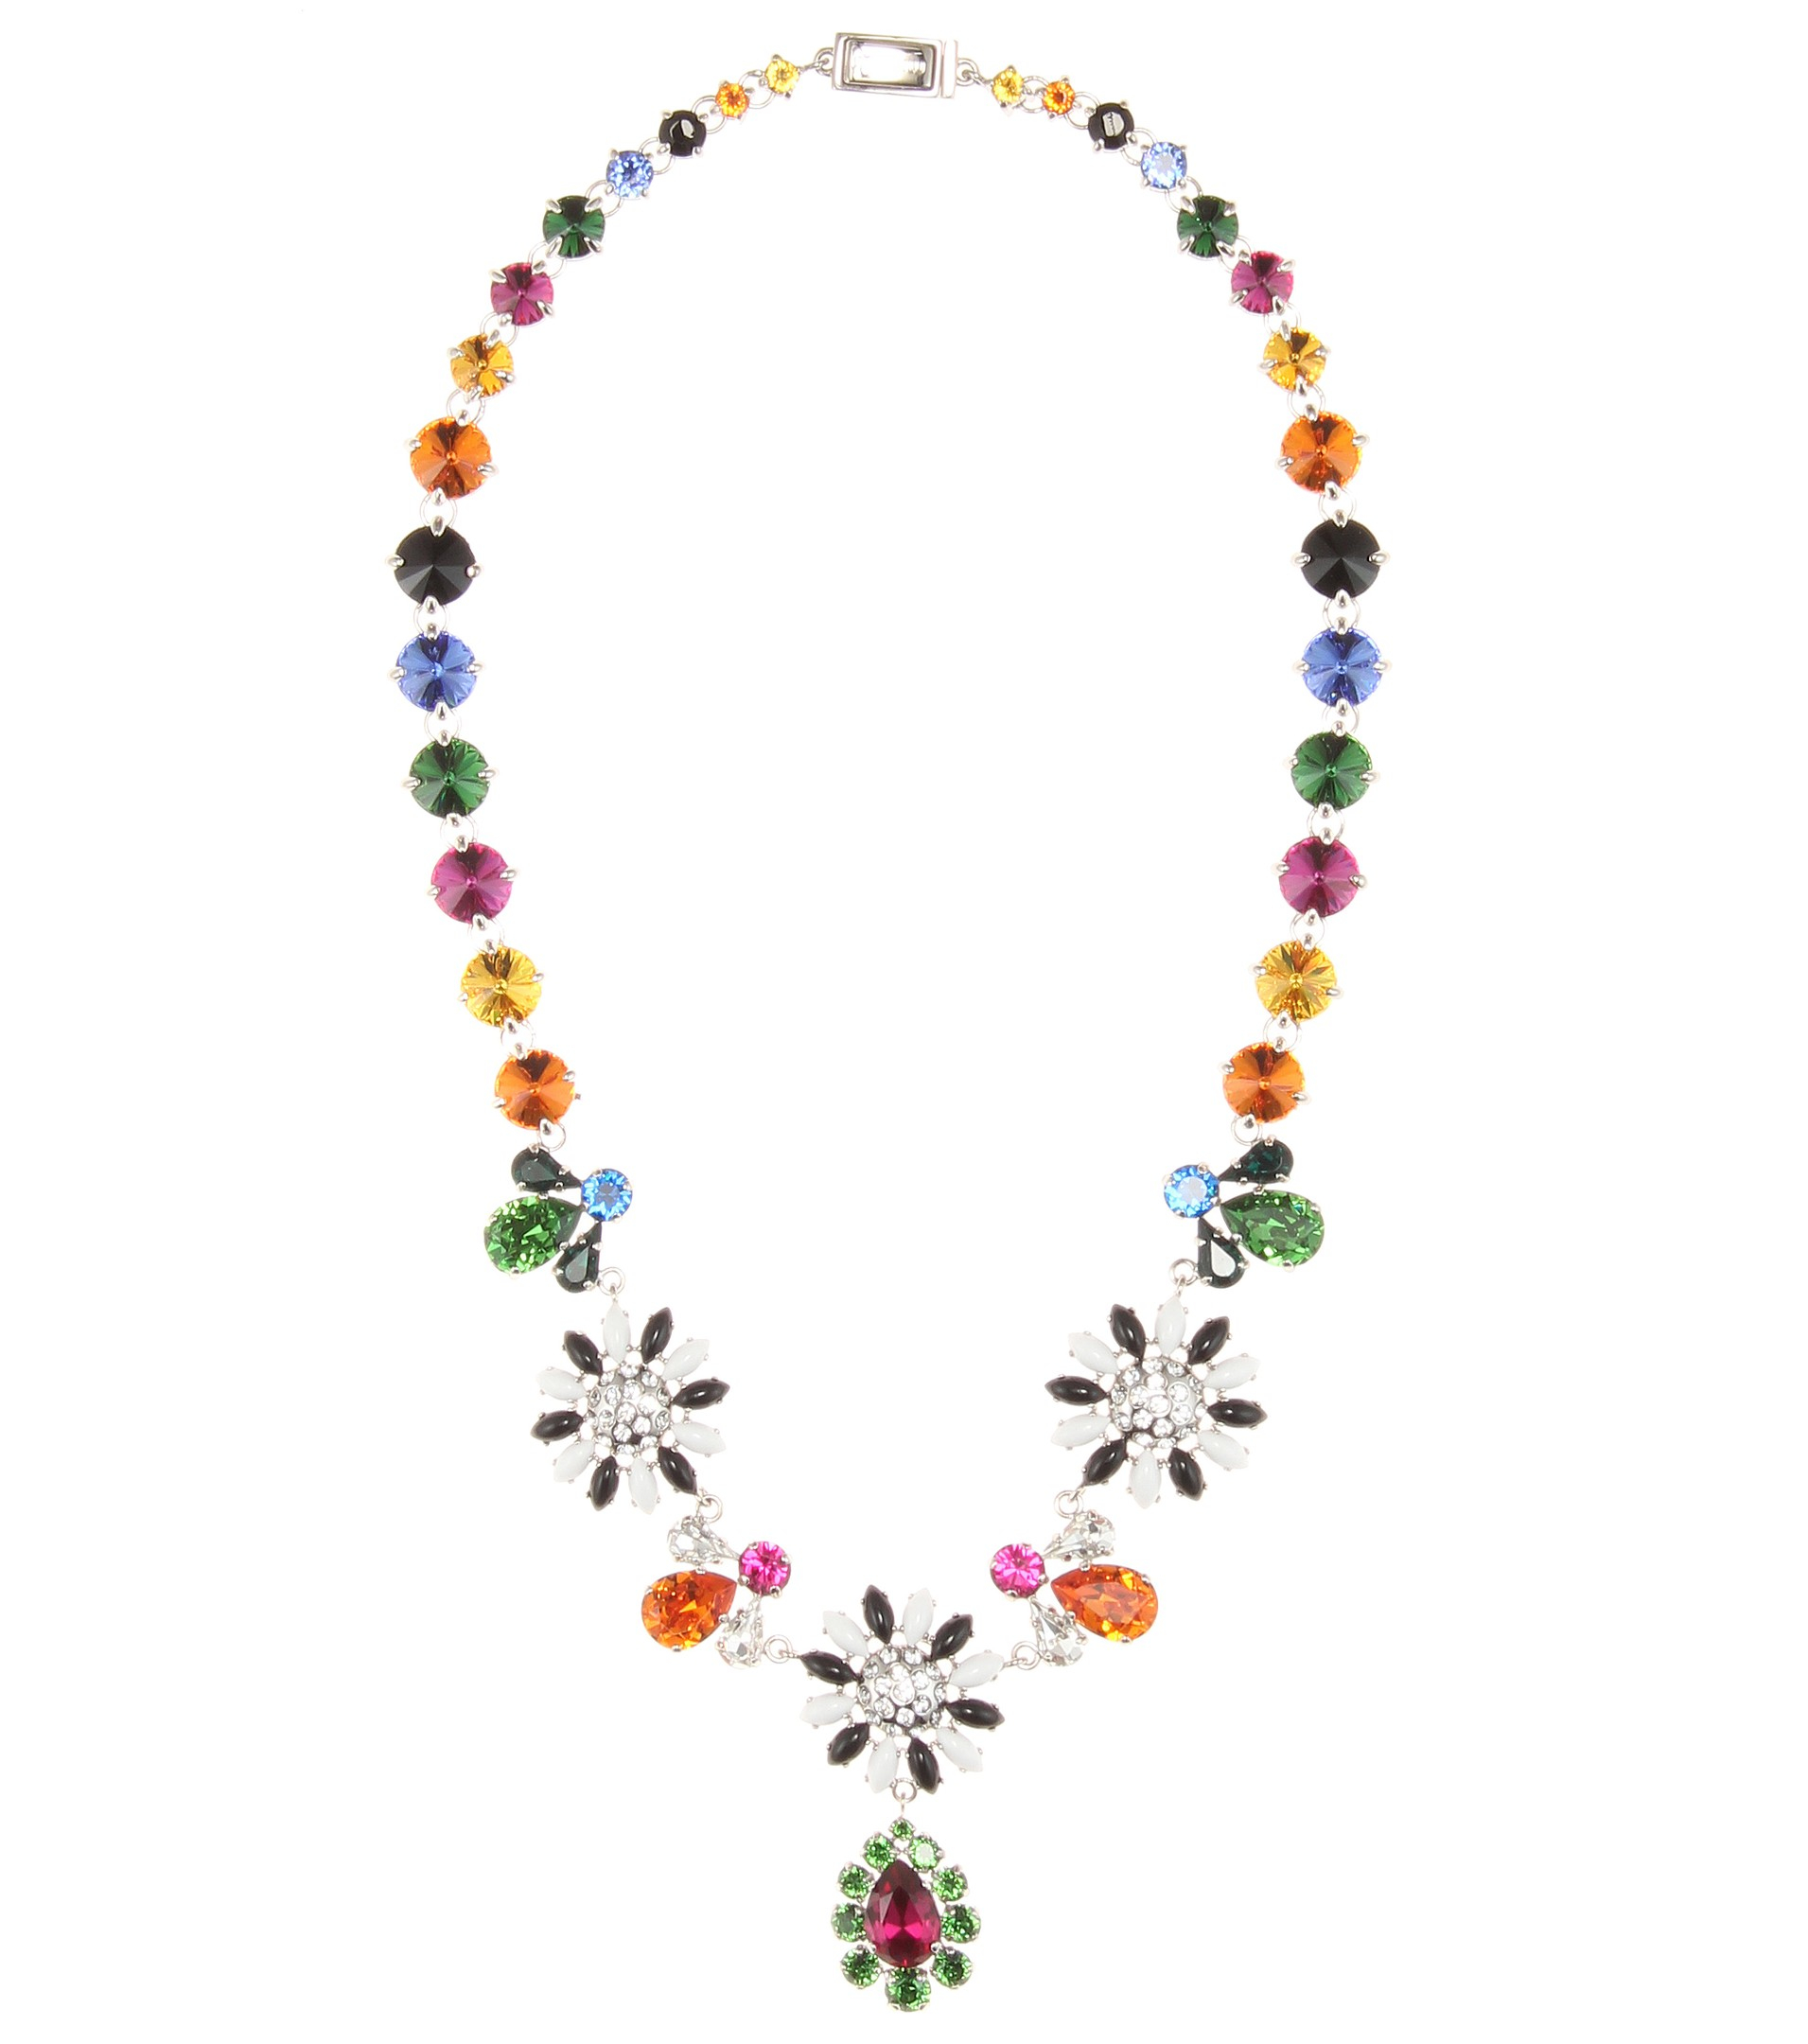 481429e554d6 Lyst - Miu Miu Crystal-embellished Necklace